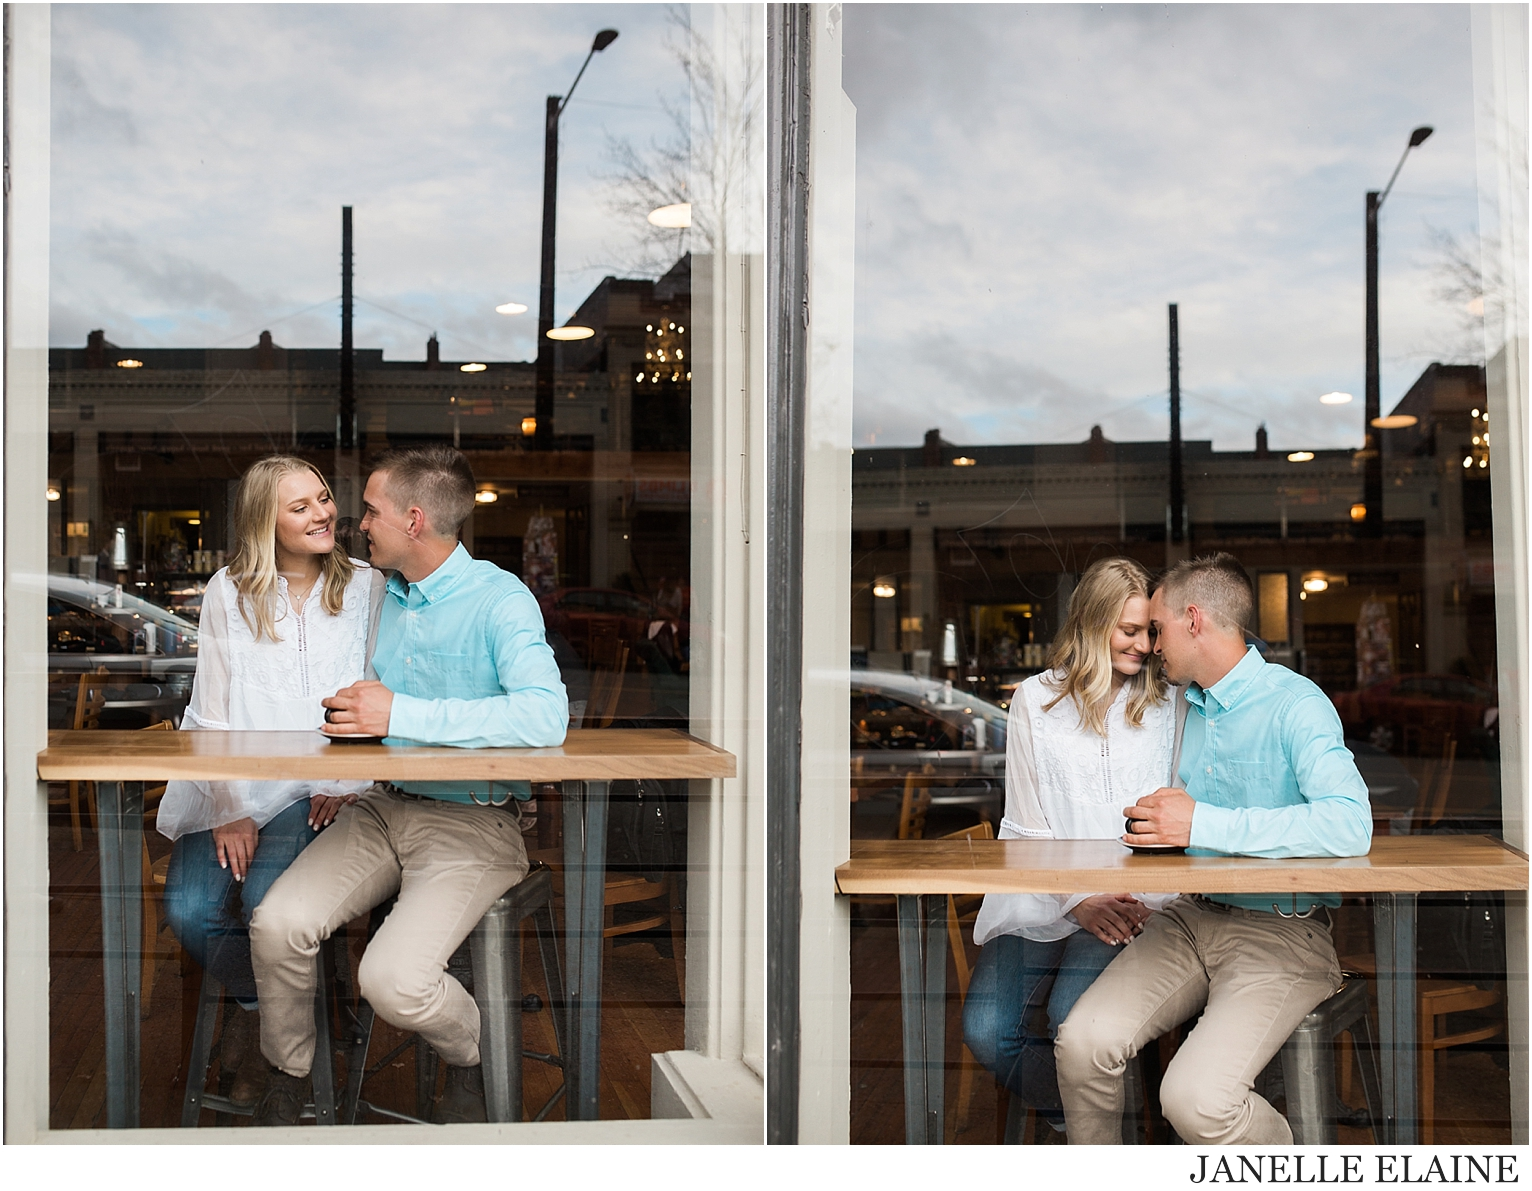 tricia and nate engagement photos-janelle elaine photography-181.jpg